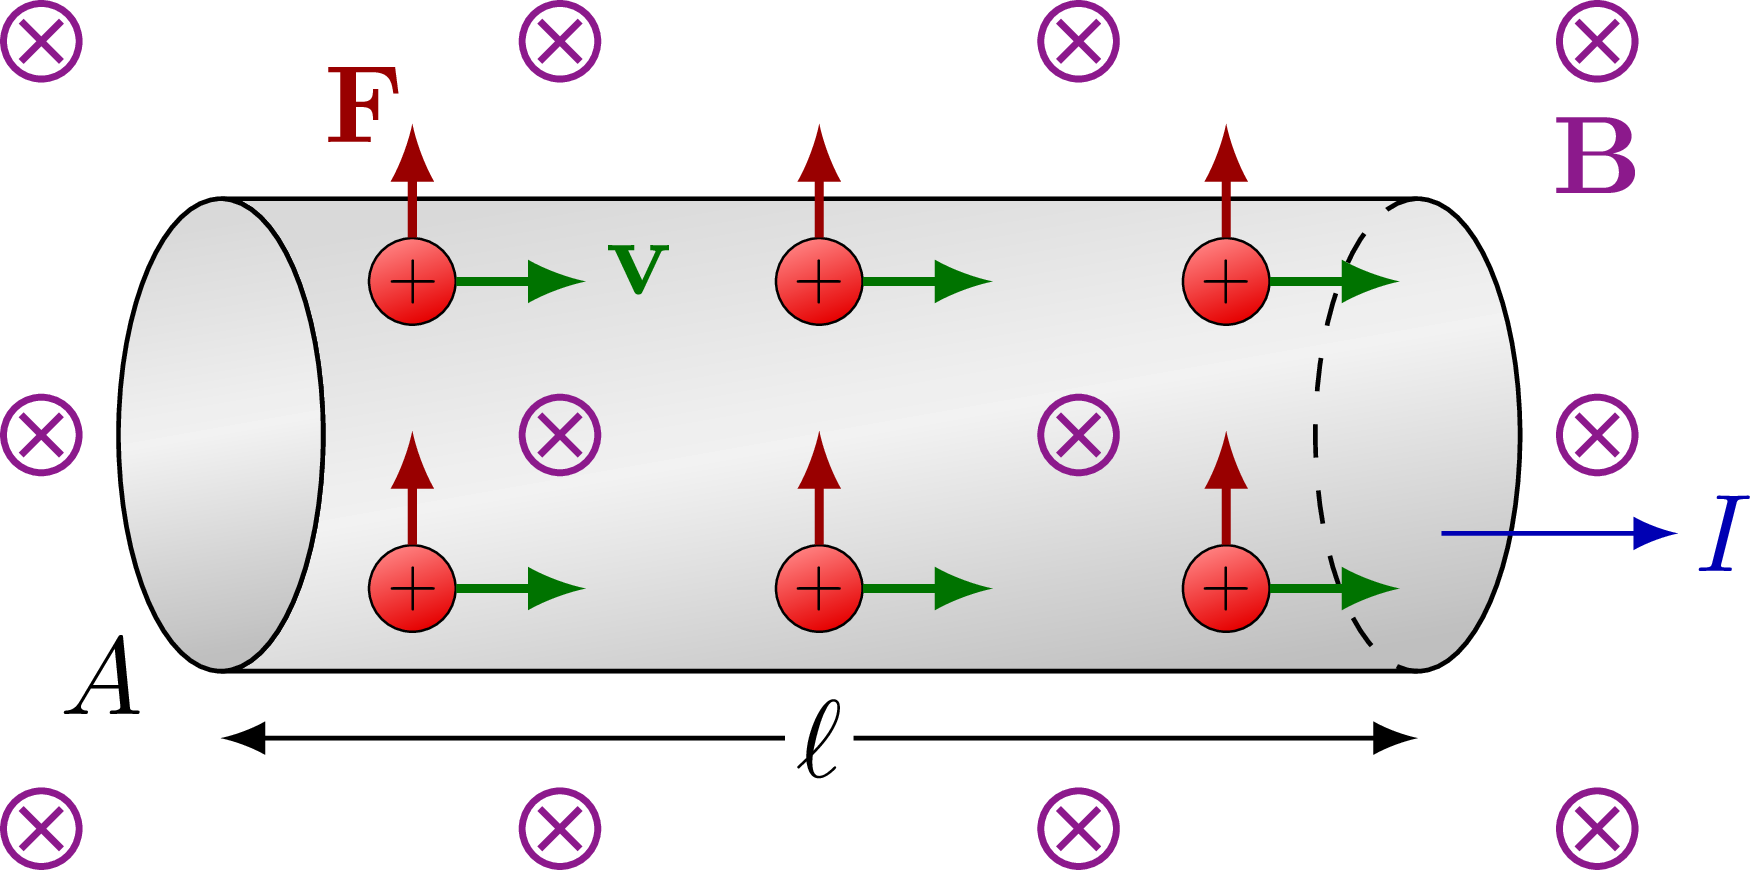 magnetic_force_current-001.png